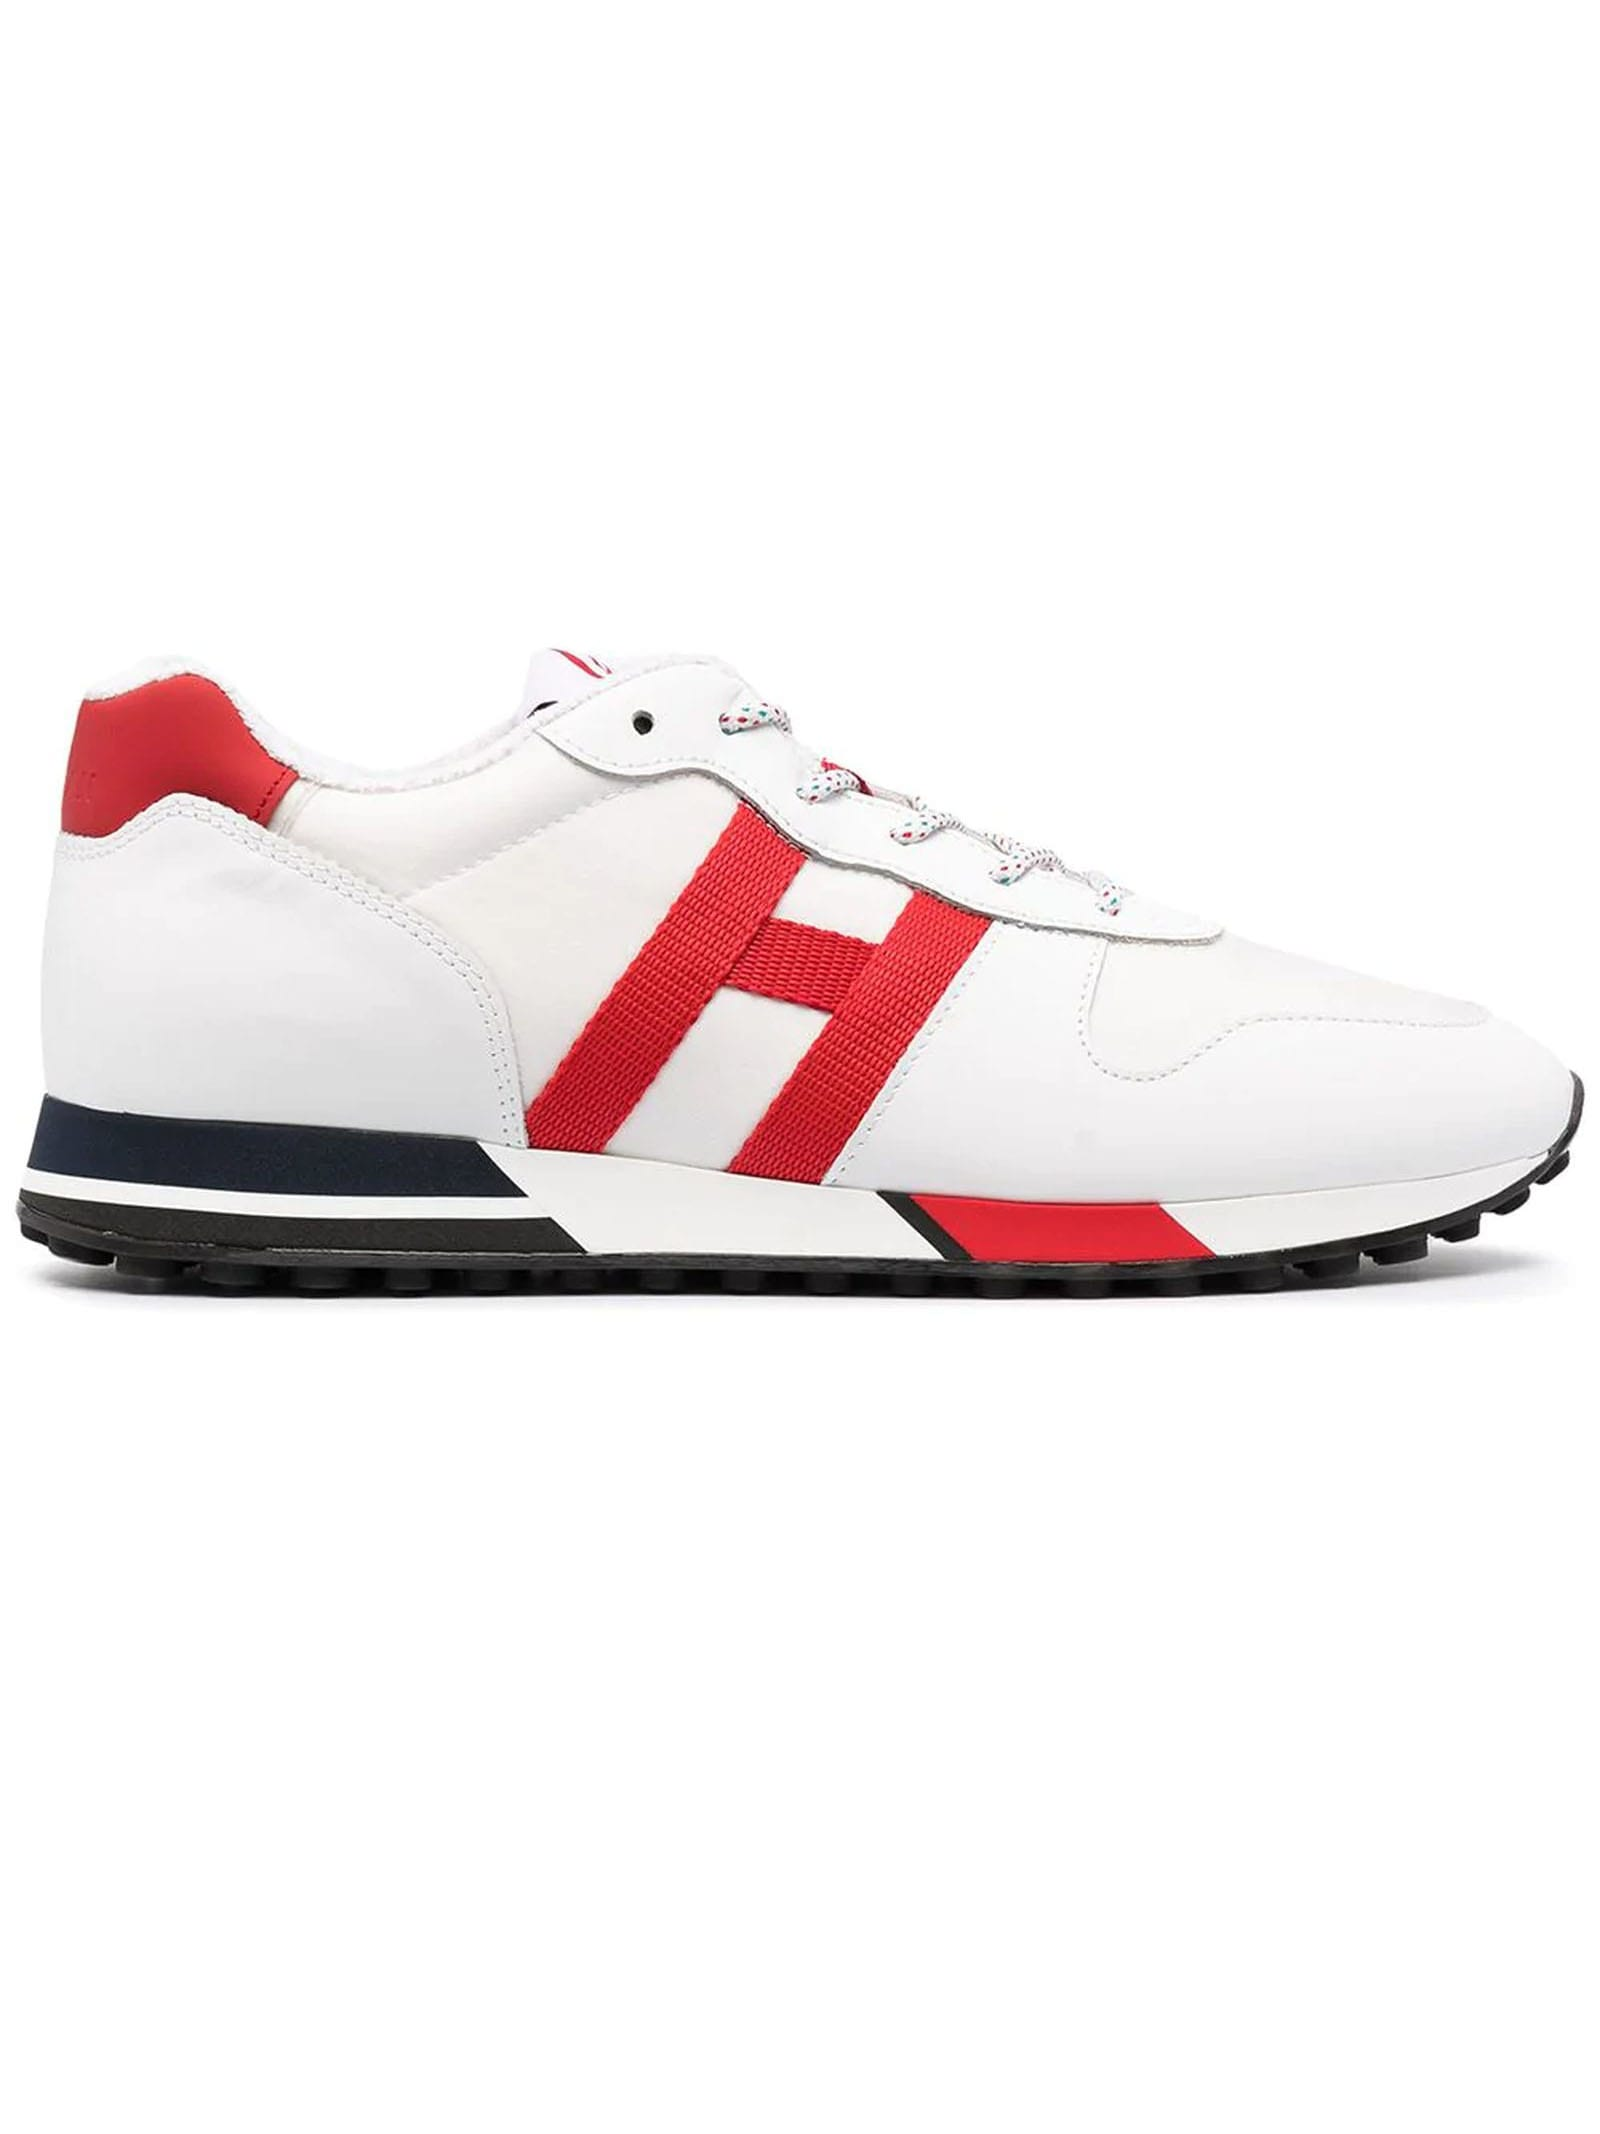 Hogan Leathers WHITE, RED H383 SNEAKERS